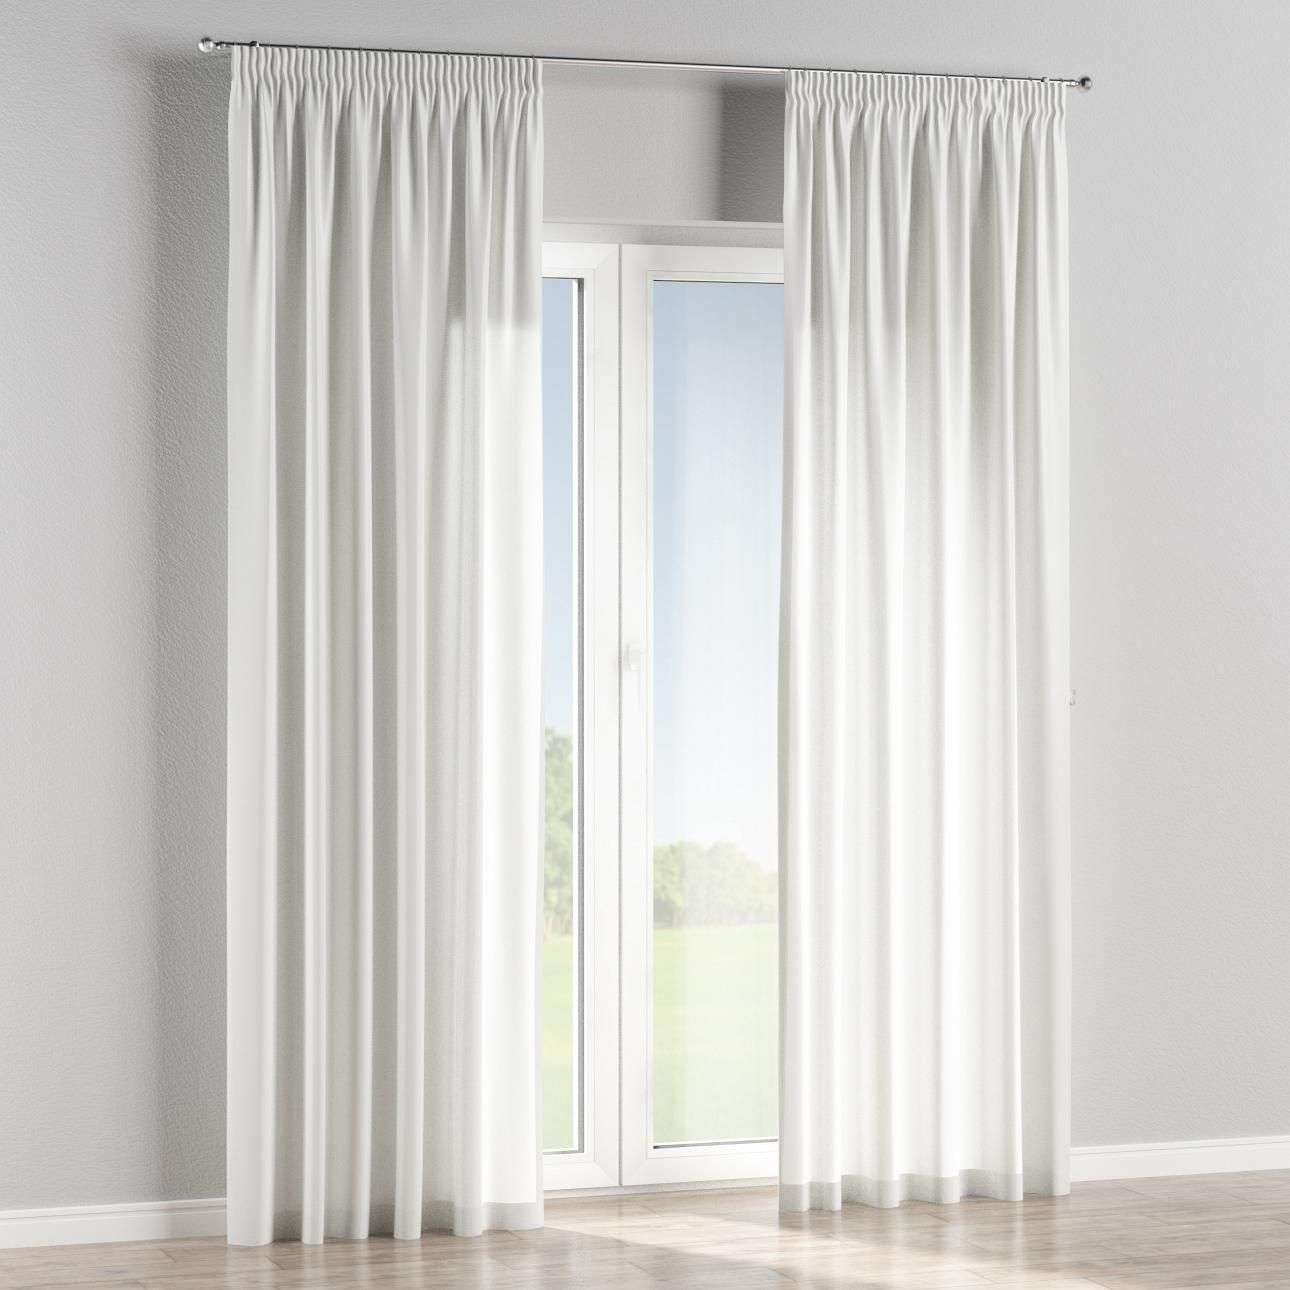 Pencil pleat lined curtains in collection Norge, fabric: 150-18